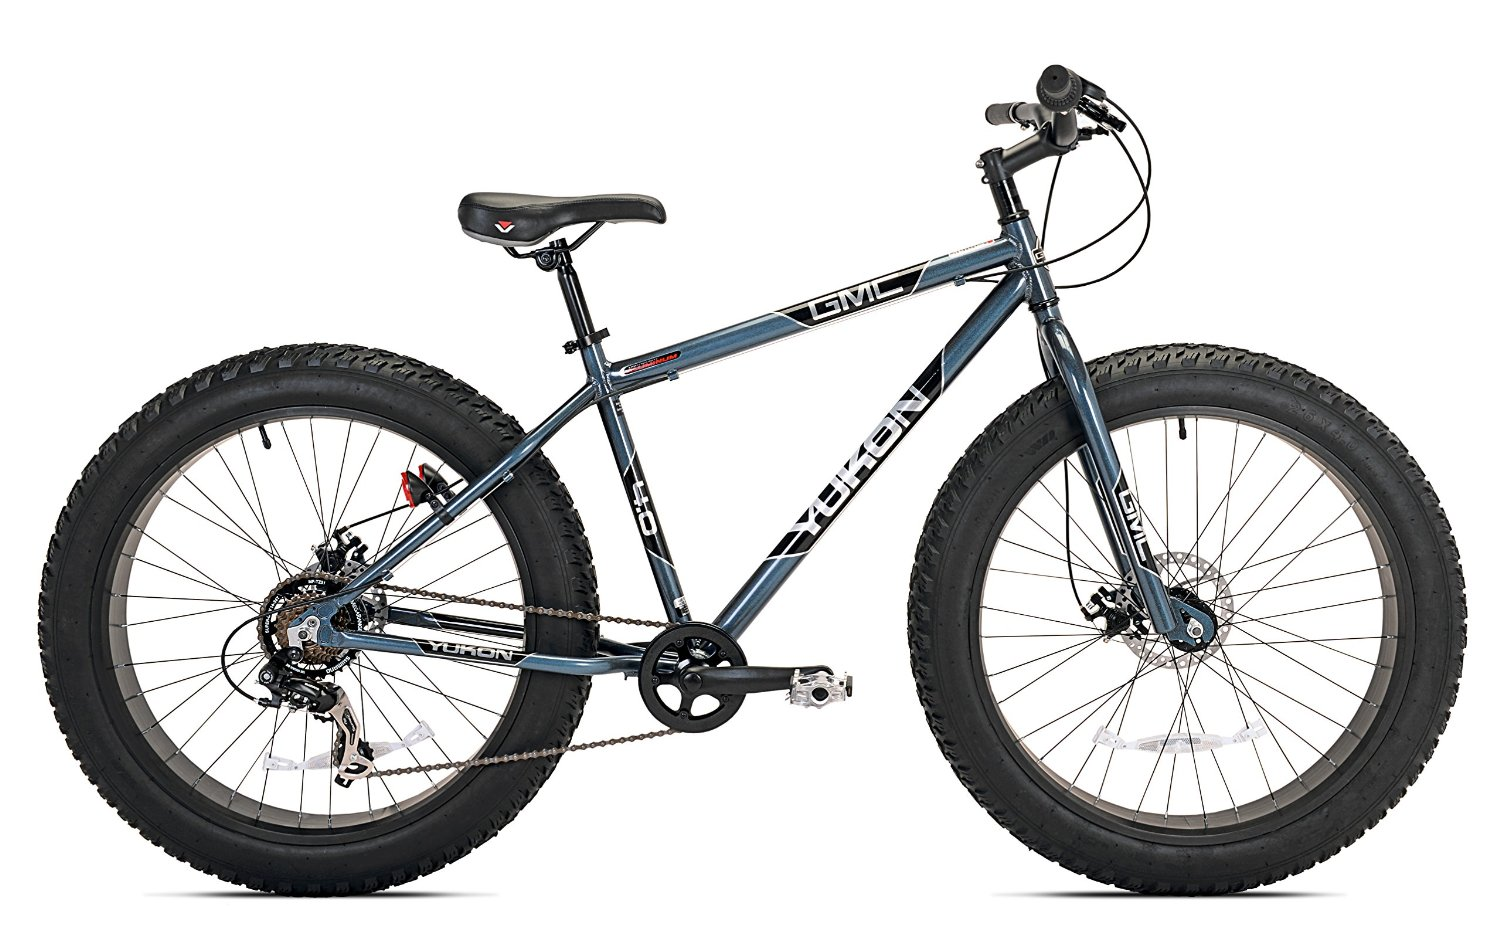 GMC Fat Tire Mountain Bike